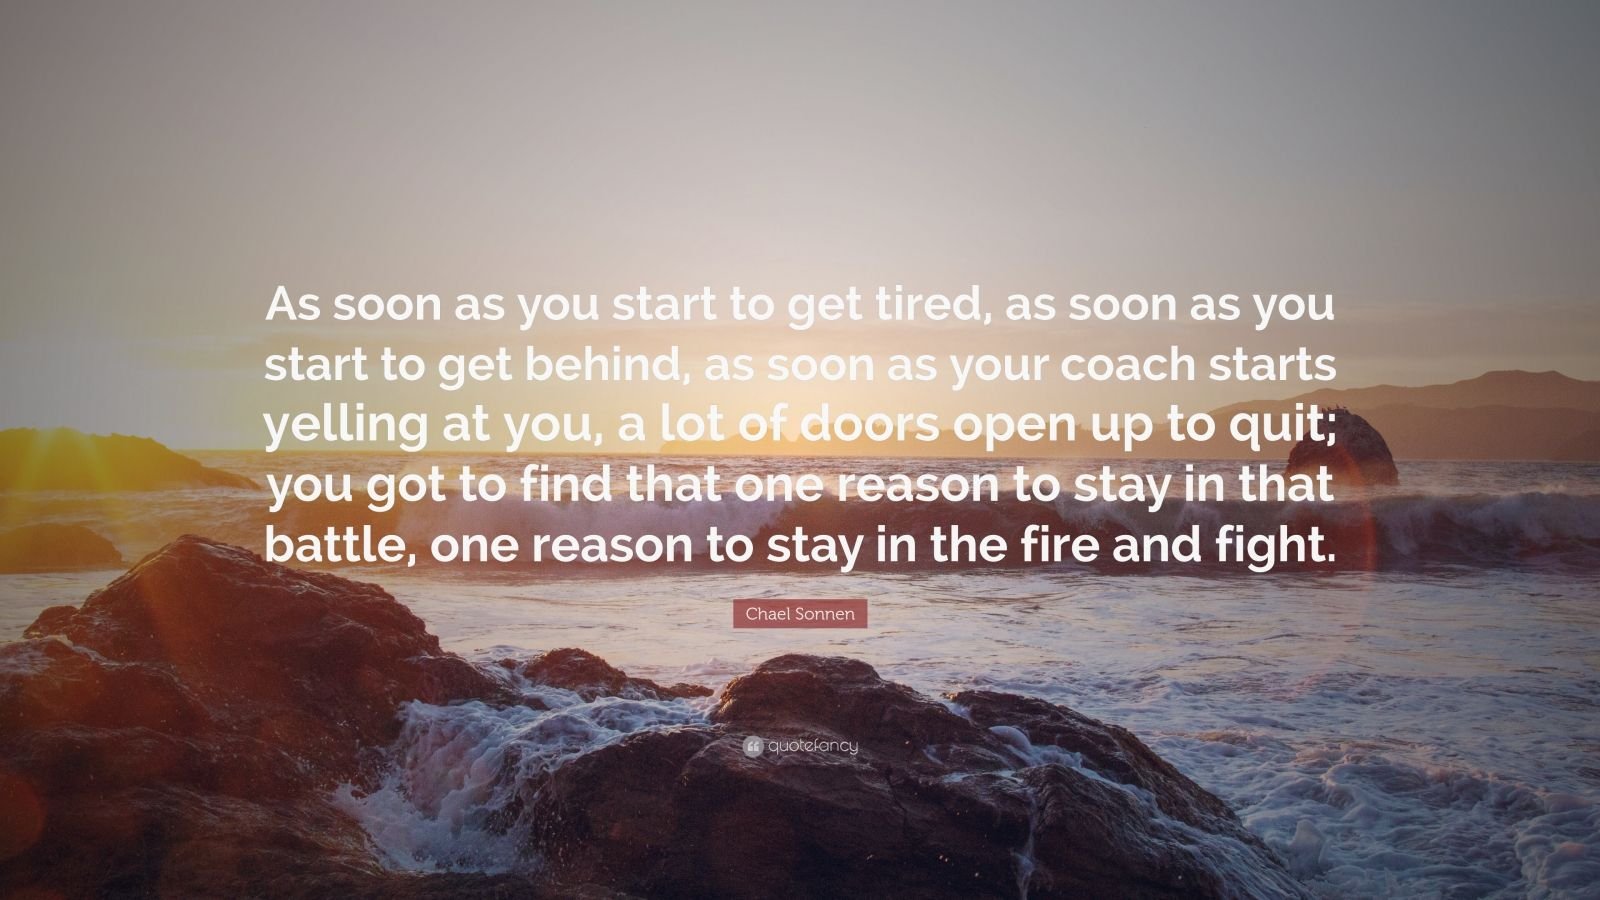 """Chael Sonnen Quote: """"As soon as you start to get tired, as soon as you start to get behind, as soon as your coach starts yelling at you, a lot of doors open up to quit; you got to find that one reason to stay in that battle, one reason to stay in the fire and fight."""""""